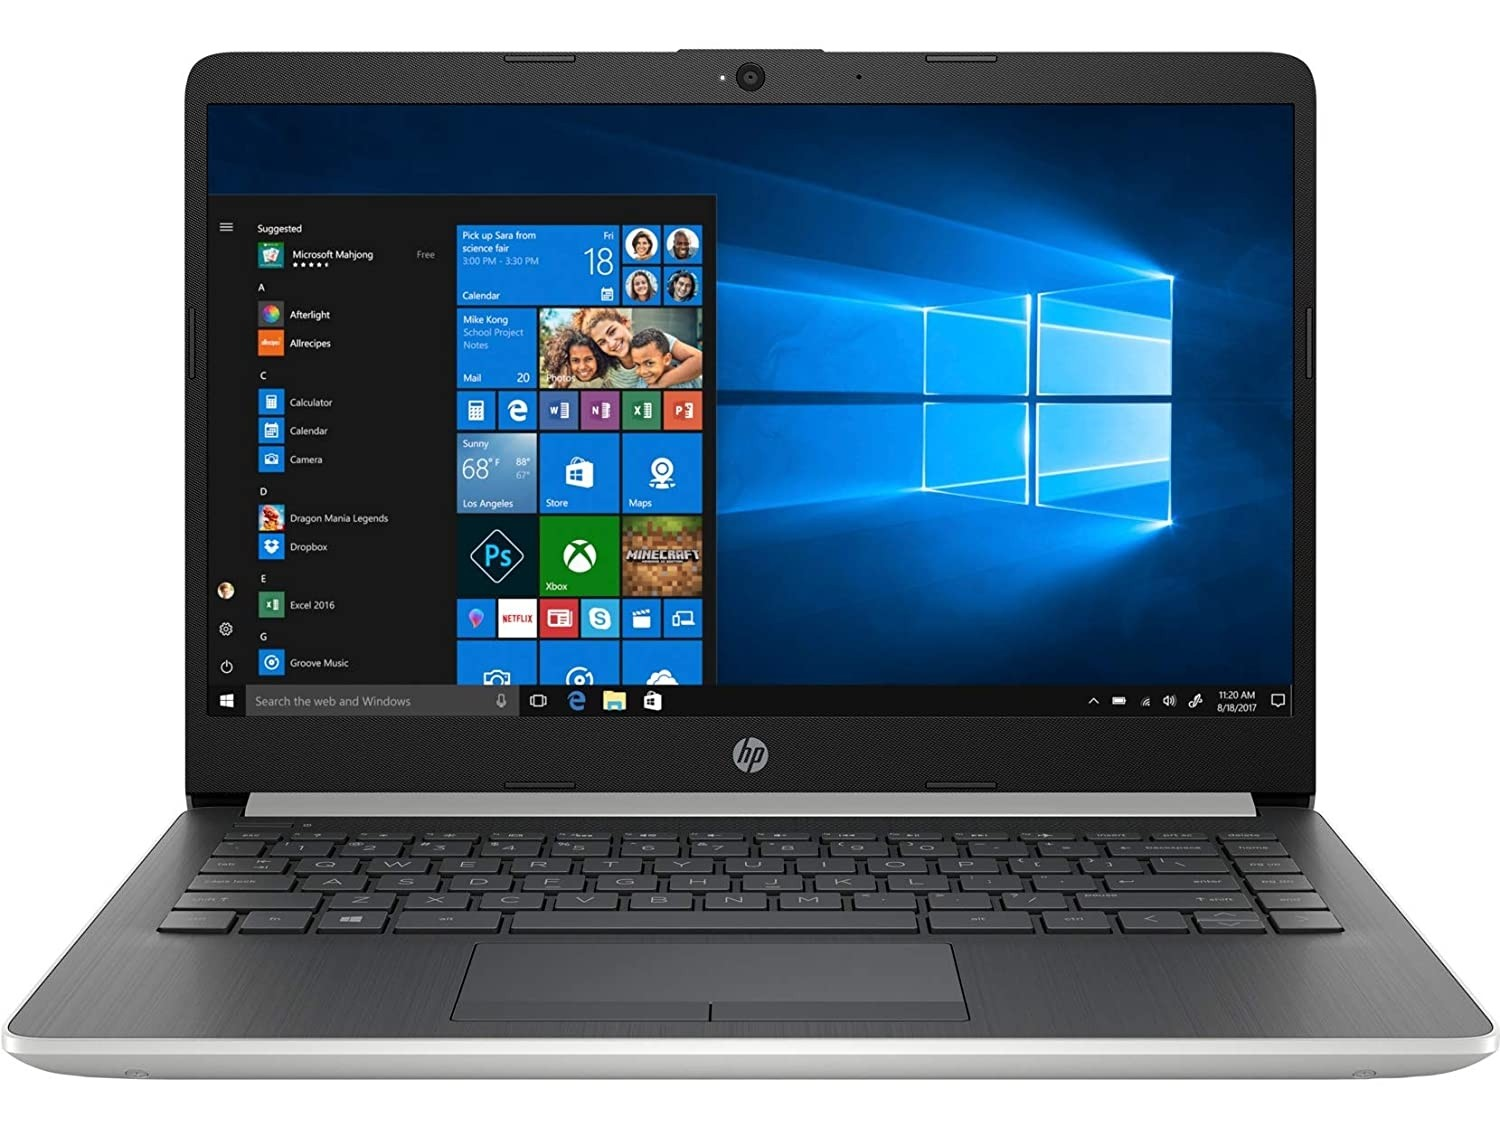 Refurbished laptops & desktops - Part No. 5RE07PAR - HP Laptop Refurbished 14s-cf0055TU IN HP 14 Core i3 7th Gen 14-inch FHD Laptop (4GB/1TB HDD/Win 10/Integrated Graphics/Natural Silver/1.47 kg)